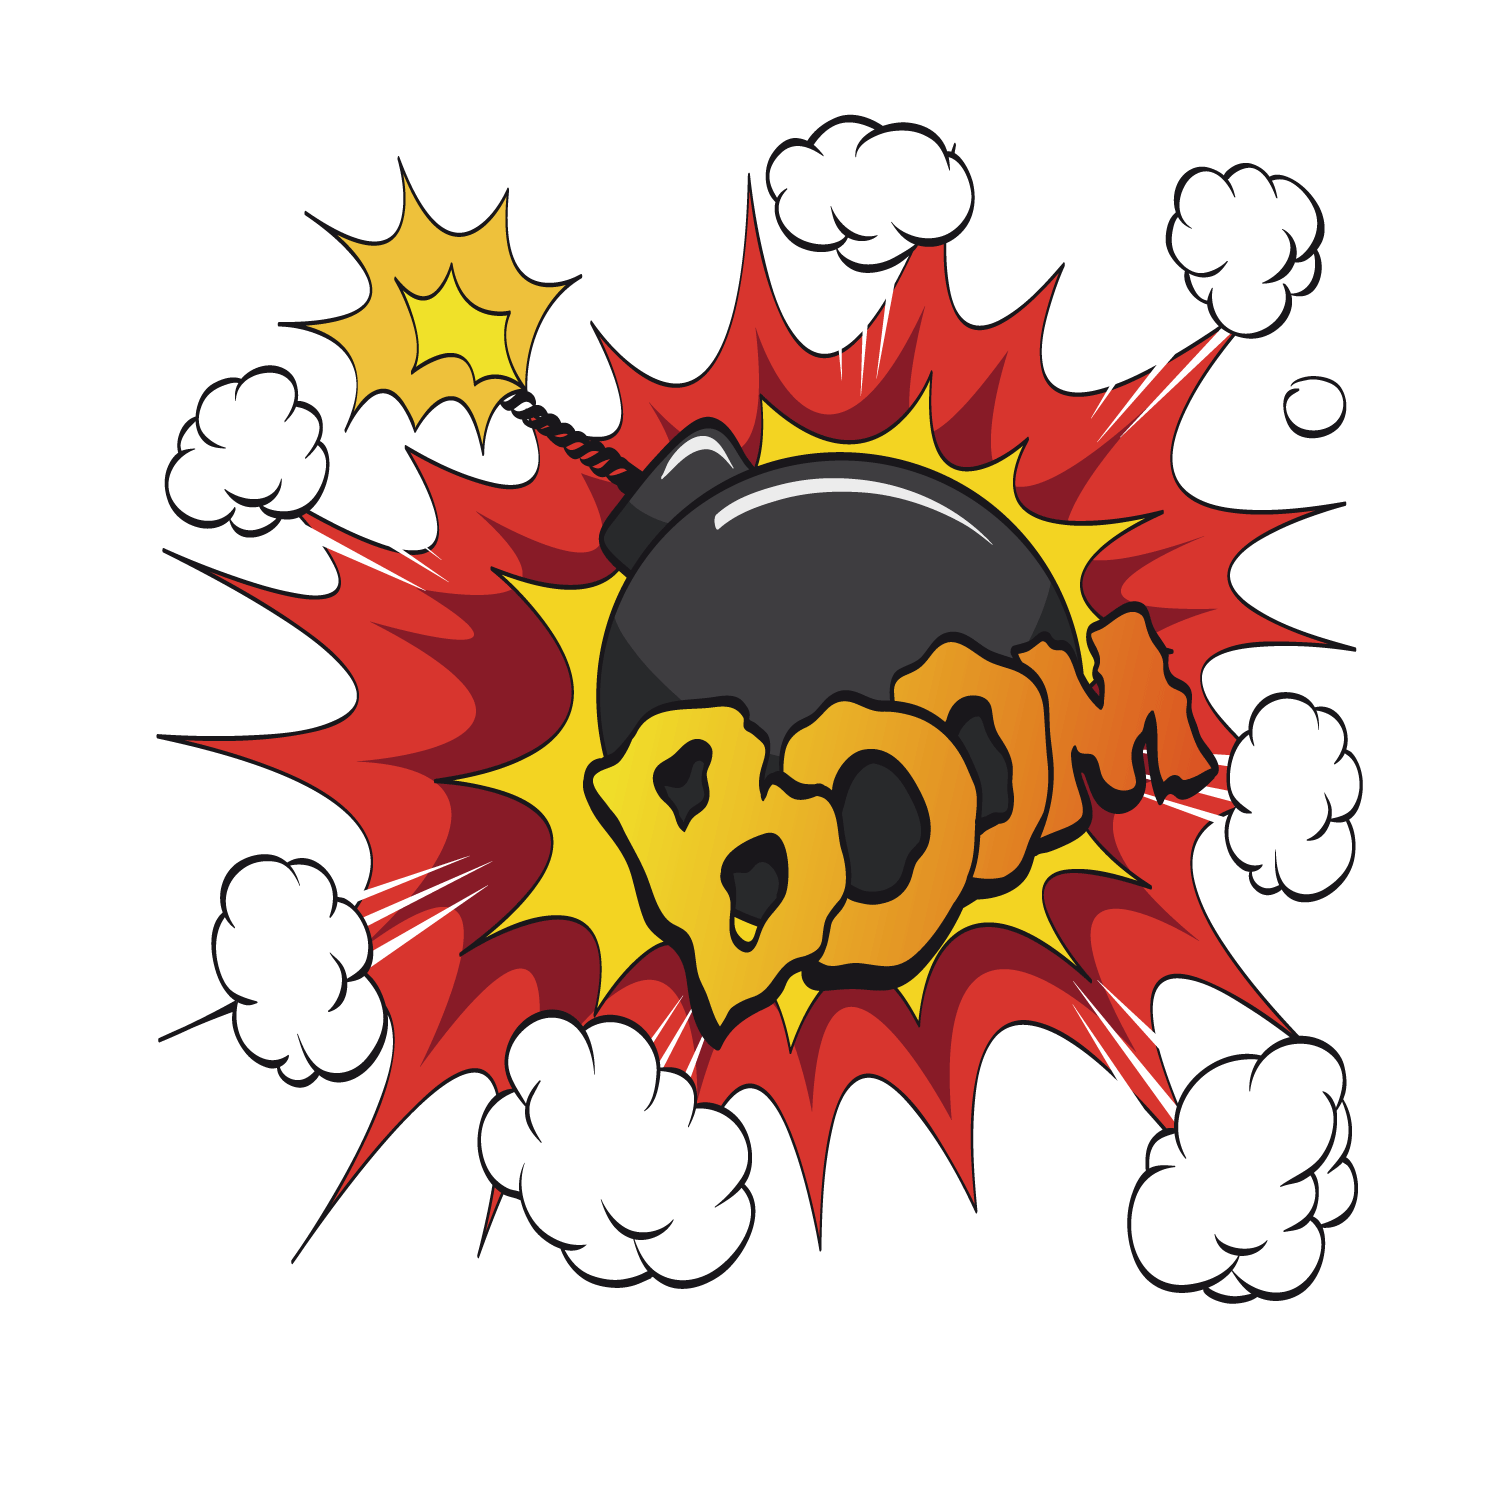 Explosion clipart gas bomb. The exploded transprent png